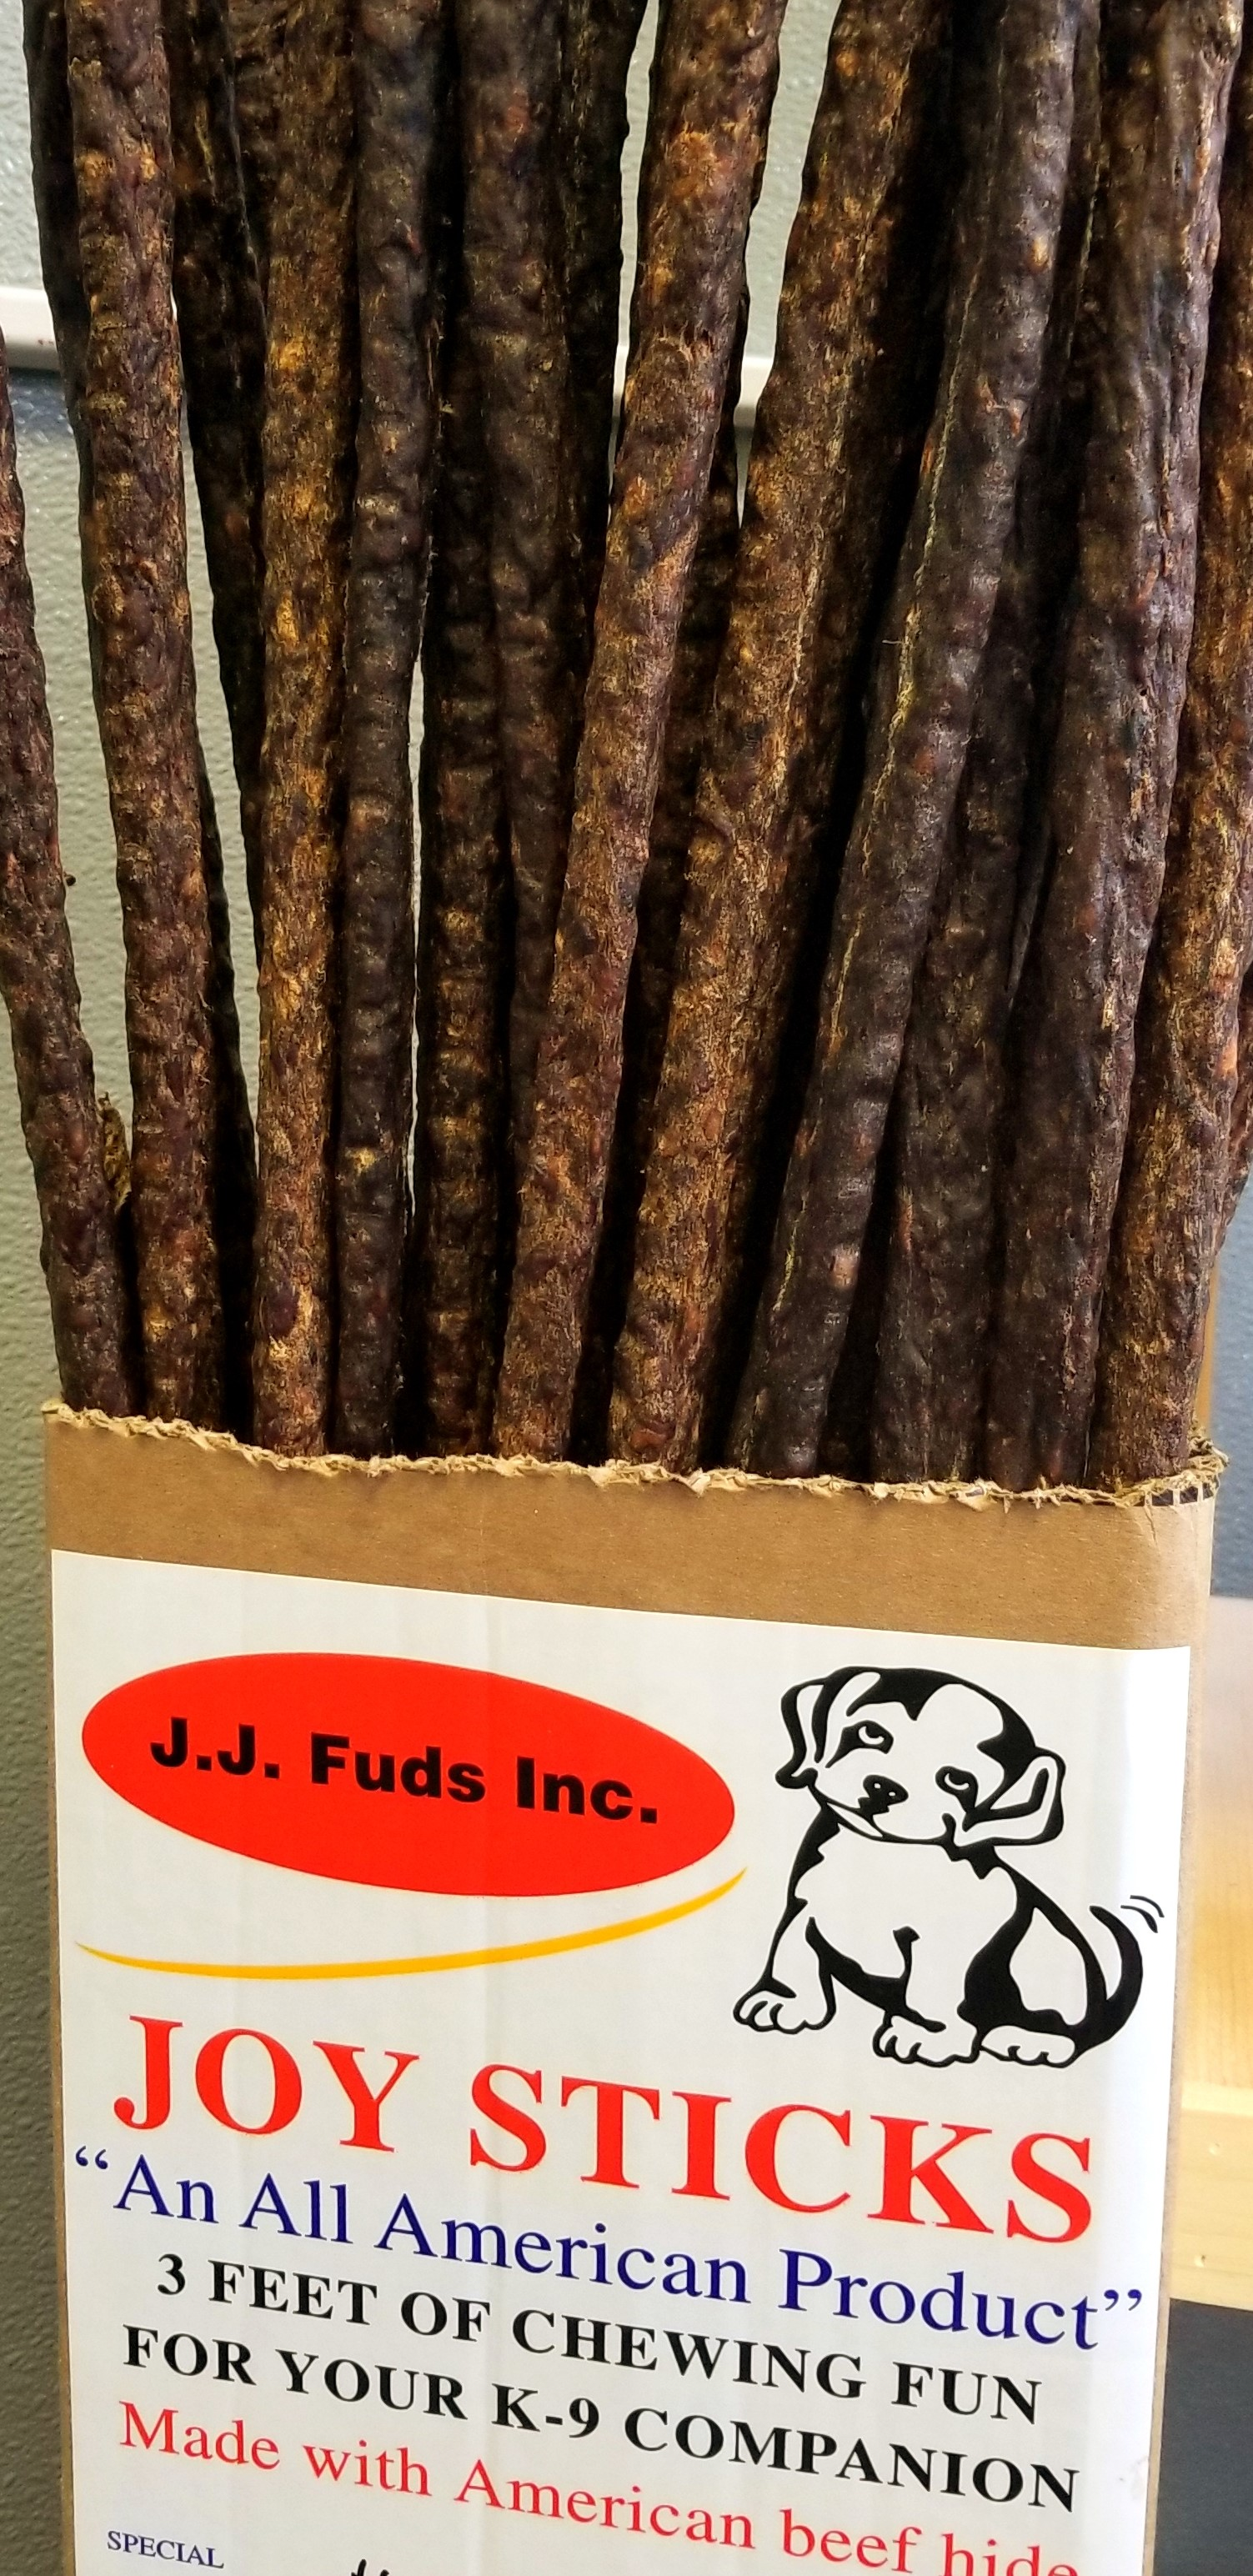 J.J. Fuds Joysticks